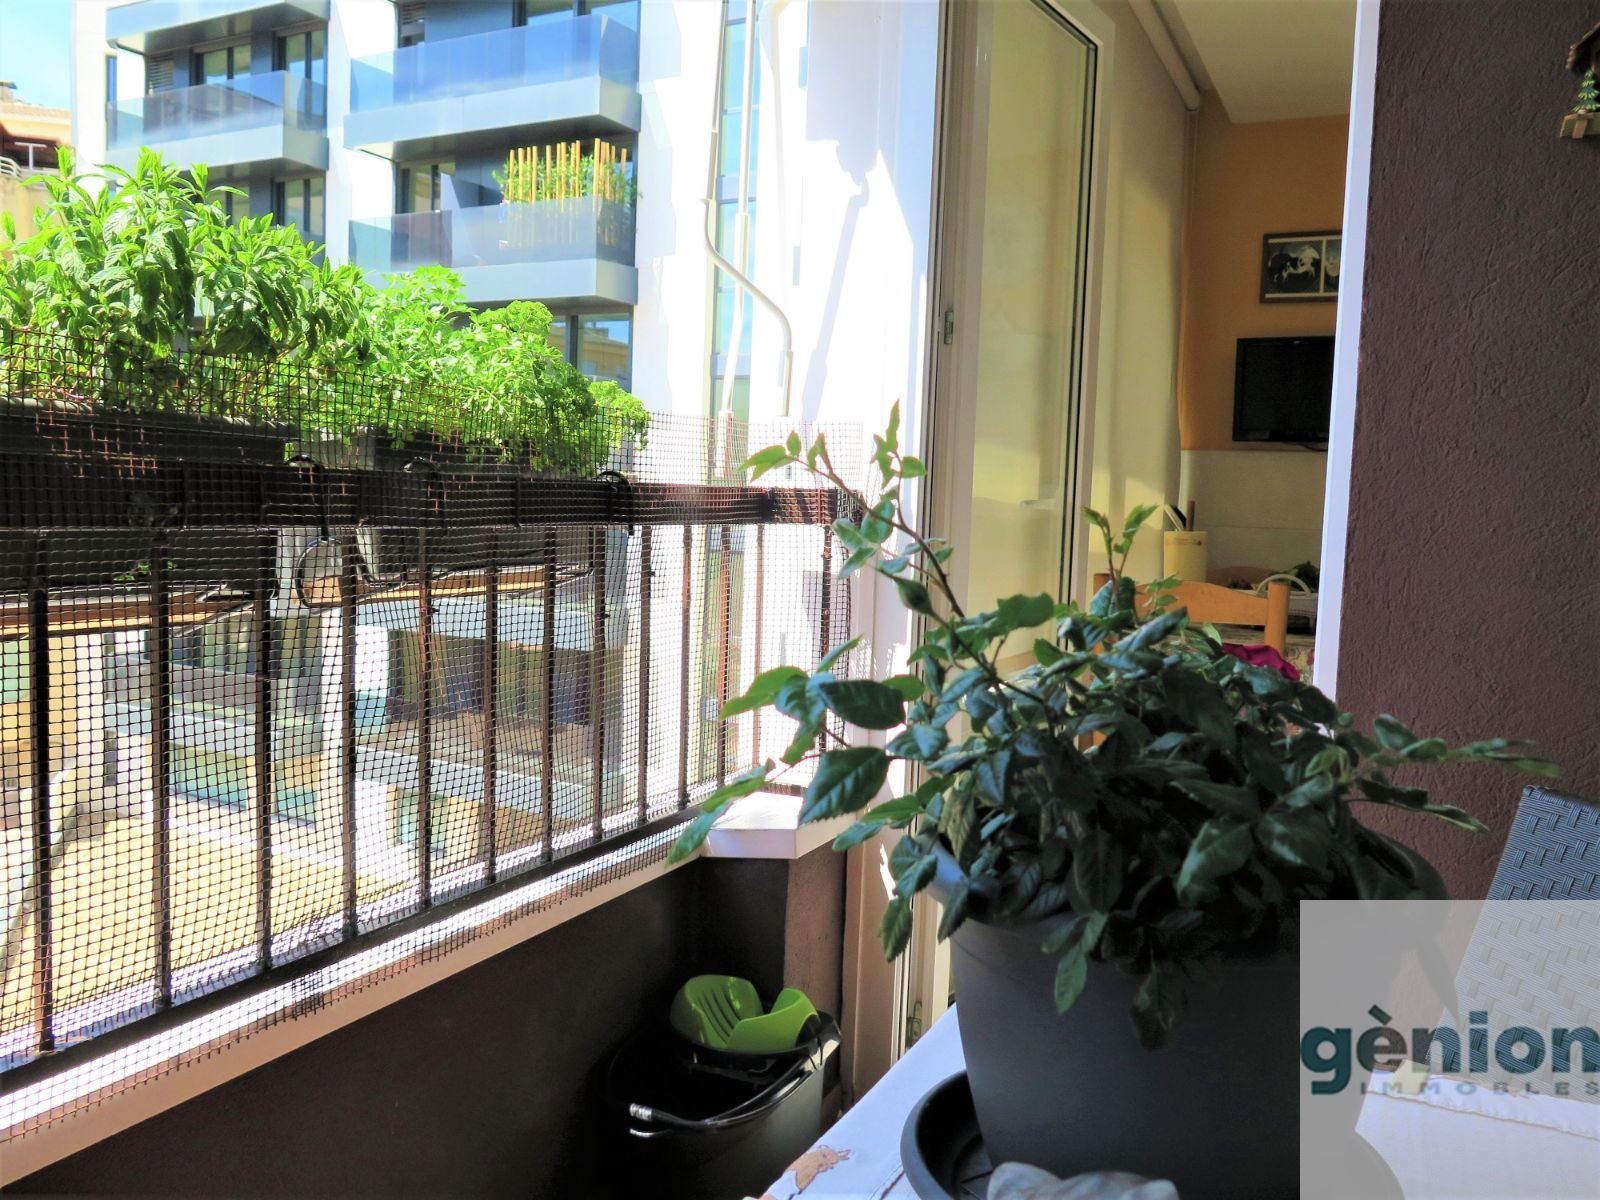 FOUR-BEDROOM APARTMENT IN PLAÇA MIQUEL SANTALÓ, RIGHT IN THE CENTRE OF GIRONA